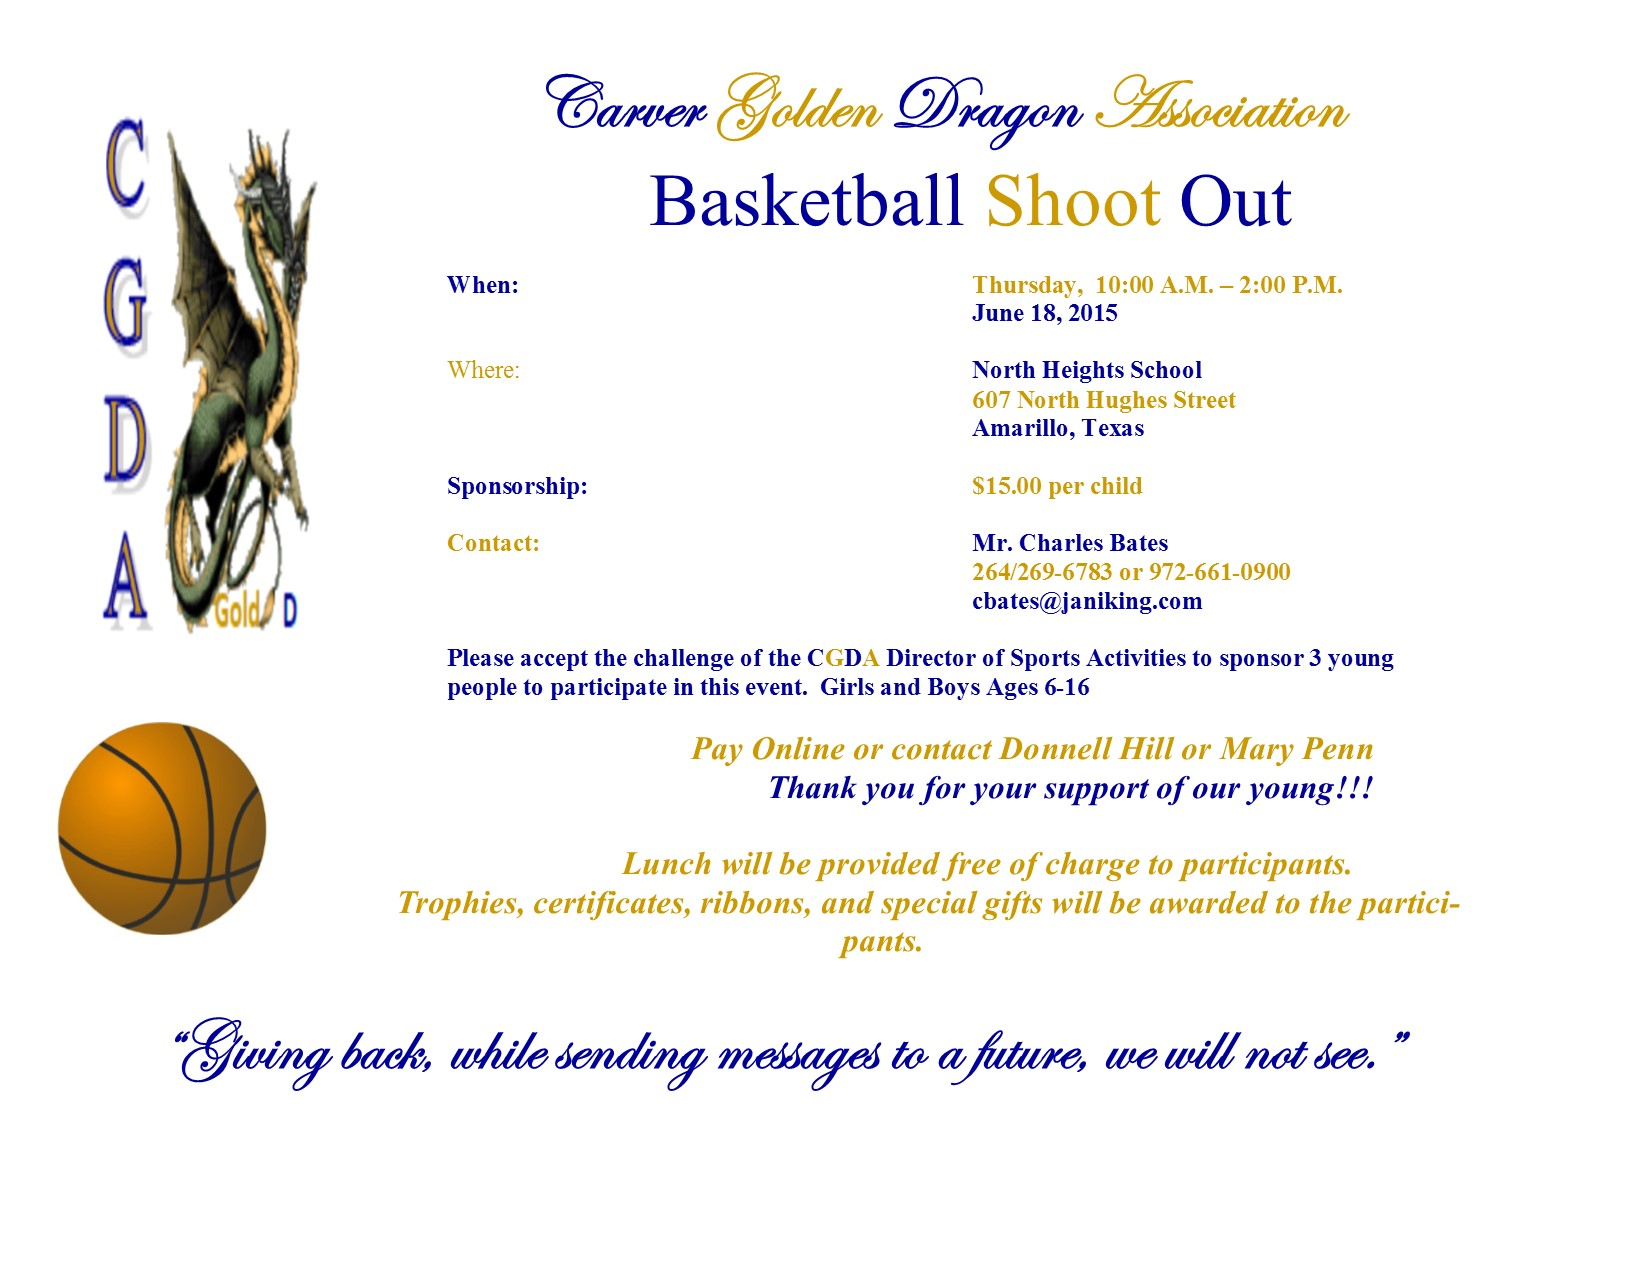 CGDA Basketball Shoot Out Flyer 2015 Dexter (1)